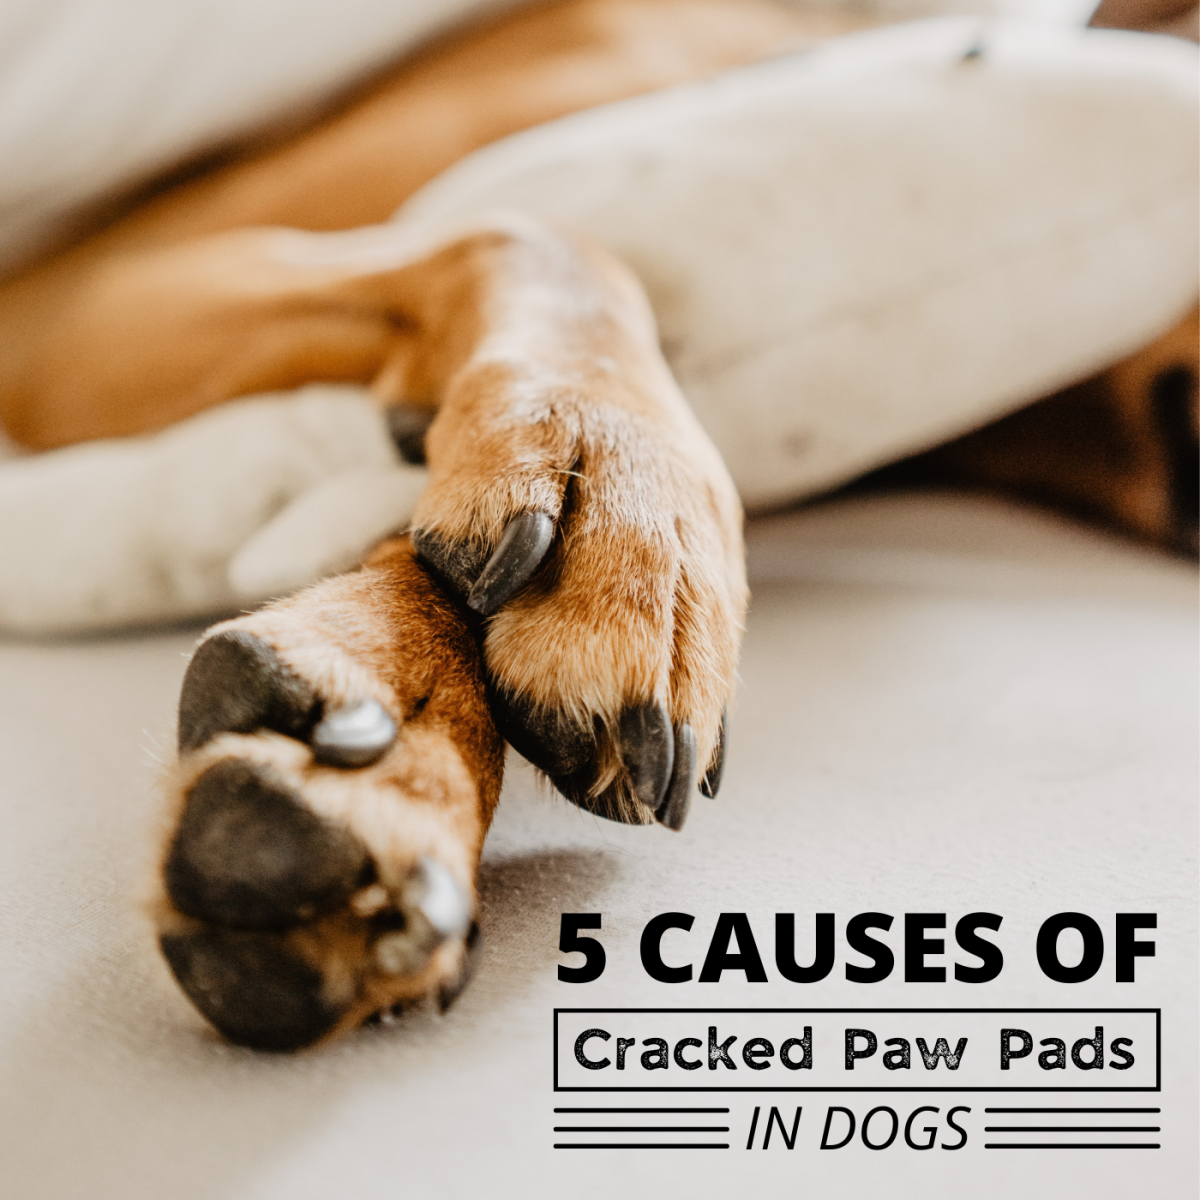 If your dog's paw pads are cracked, work with your vet to identify the underlying cause of the problem before taking action.